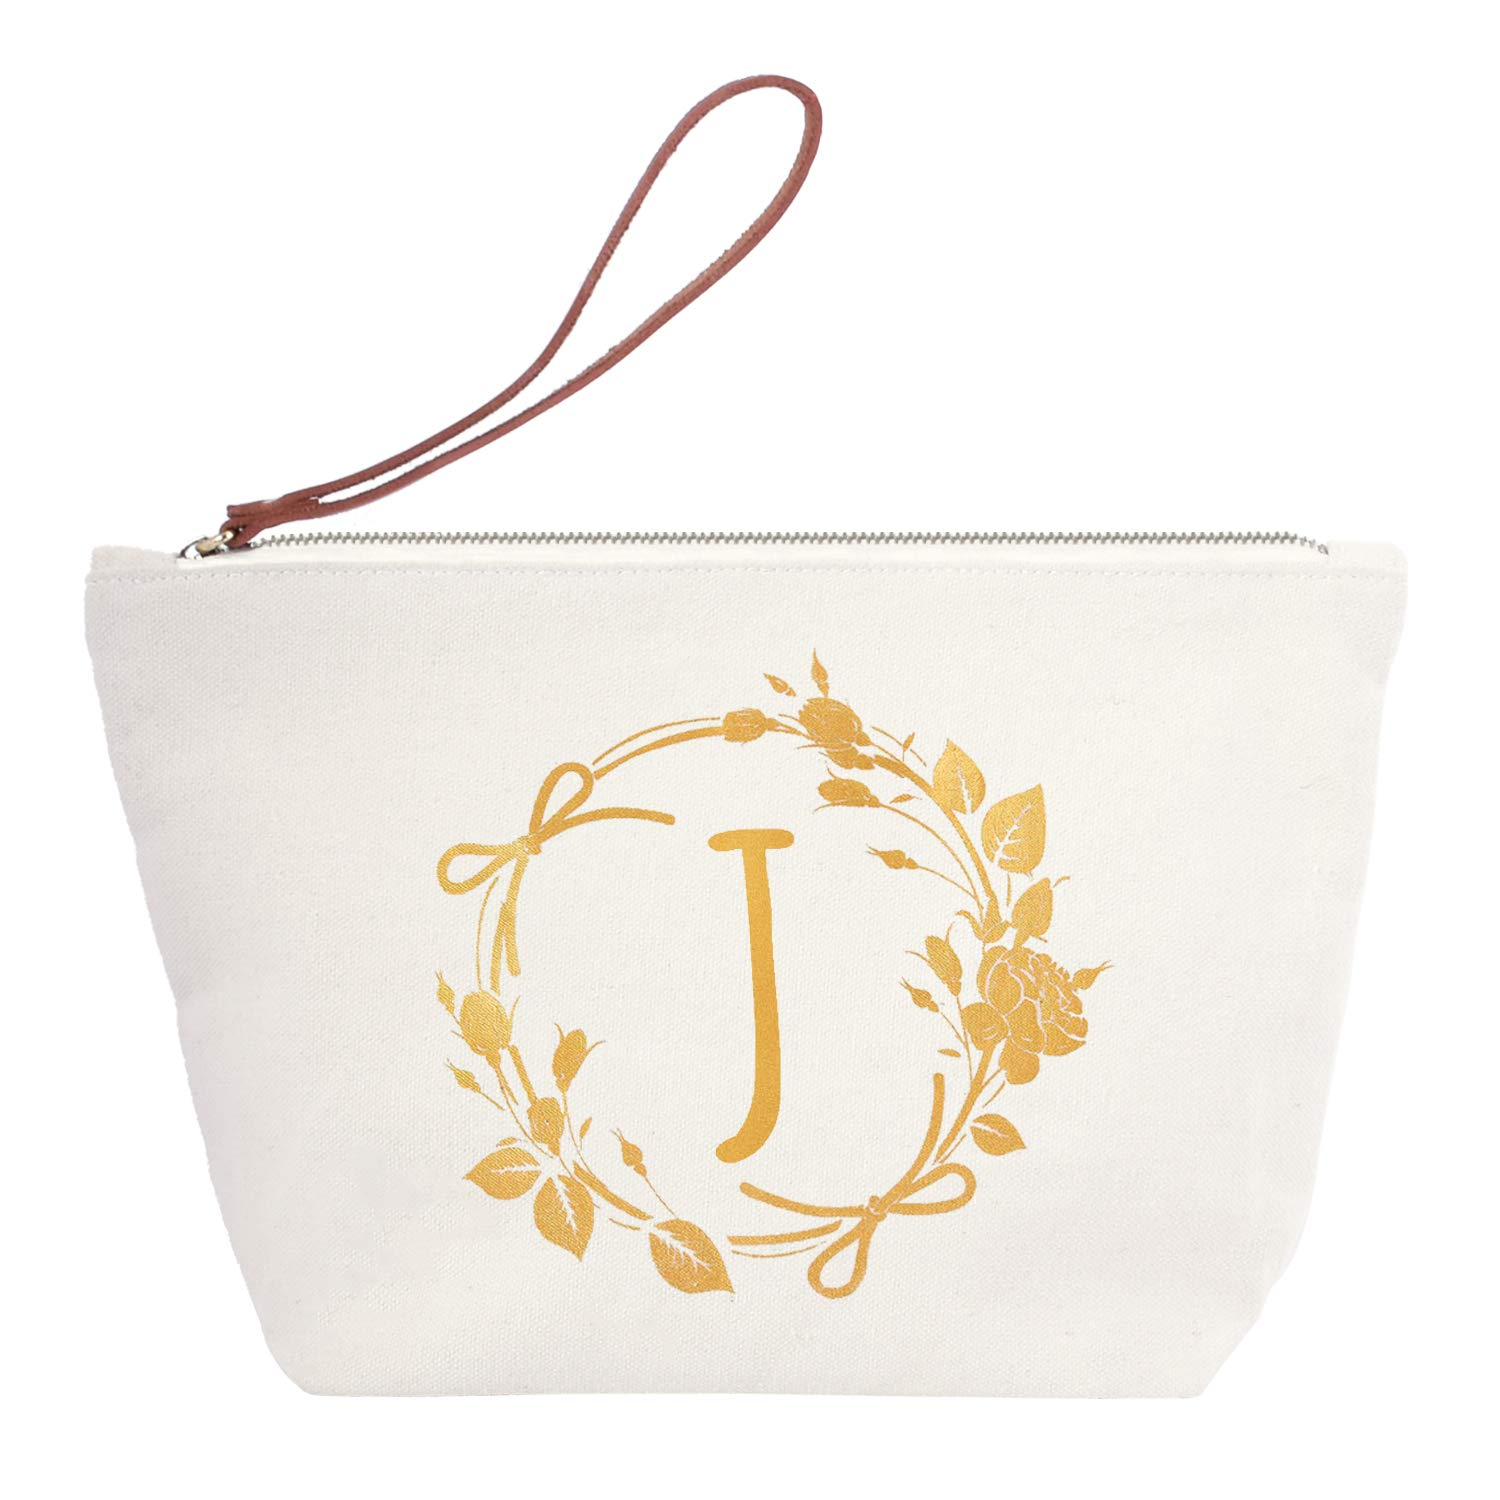 ElegantPark J Initial Monogram Personalized Travel Makeup Cosmetic Bag Wristlet Pouch Gifts with Zipper Canvas